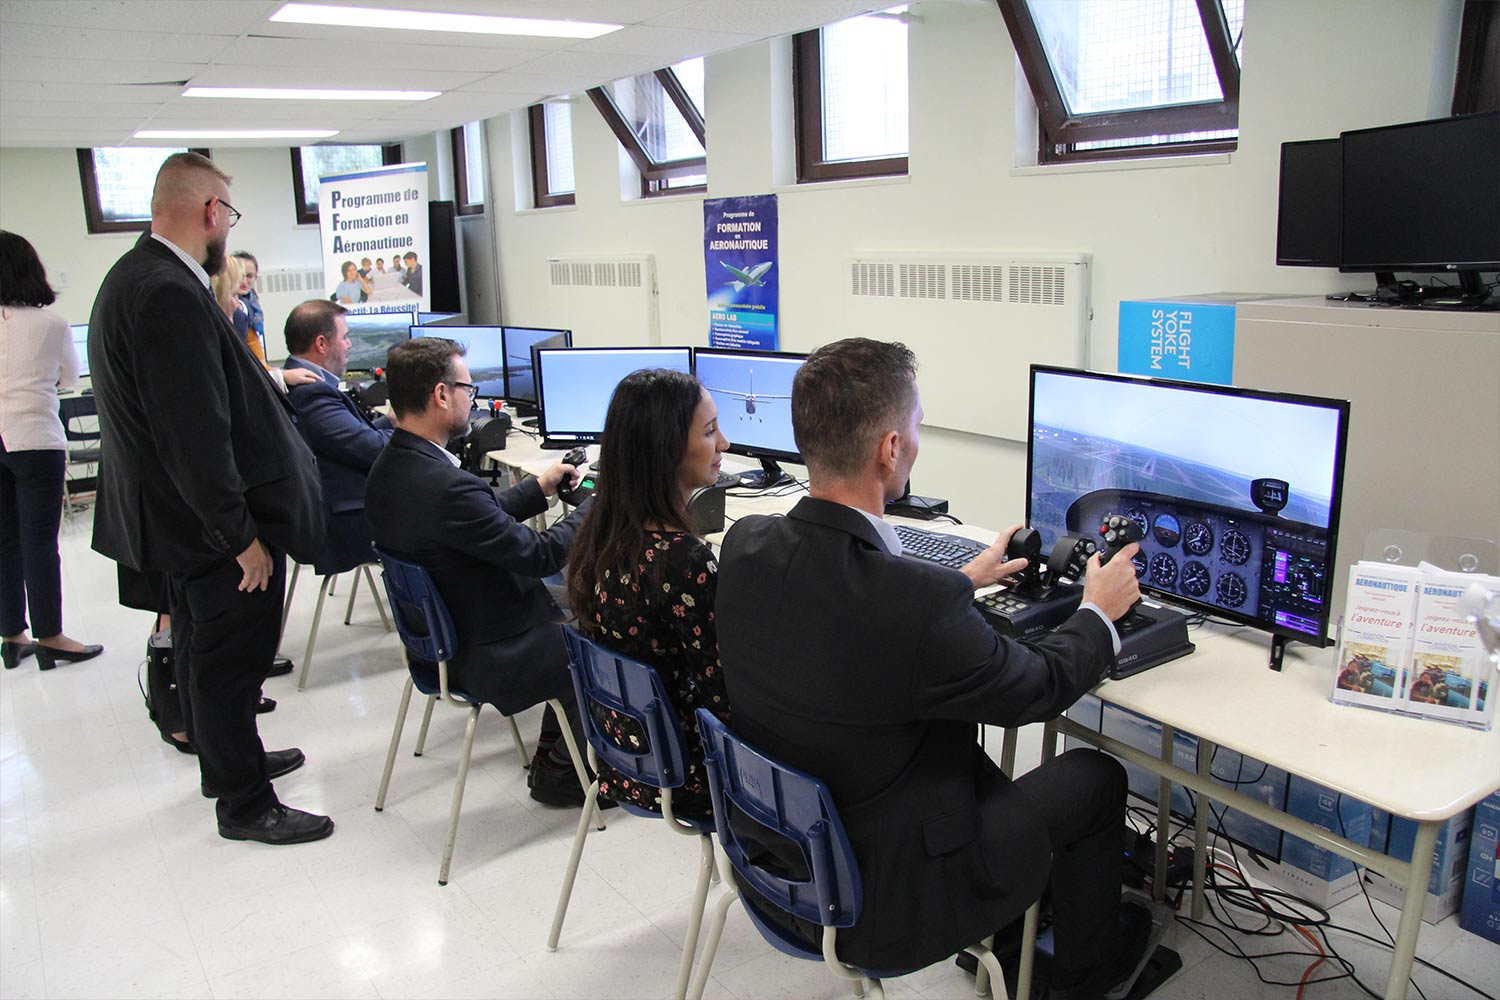 st-laurent-inauguration-aviation-connection